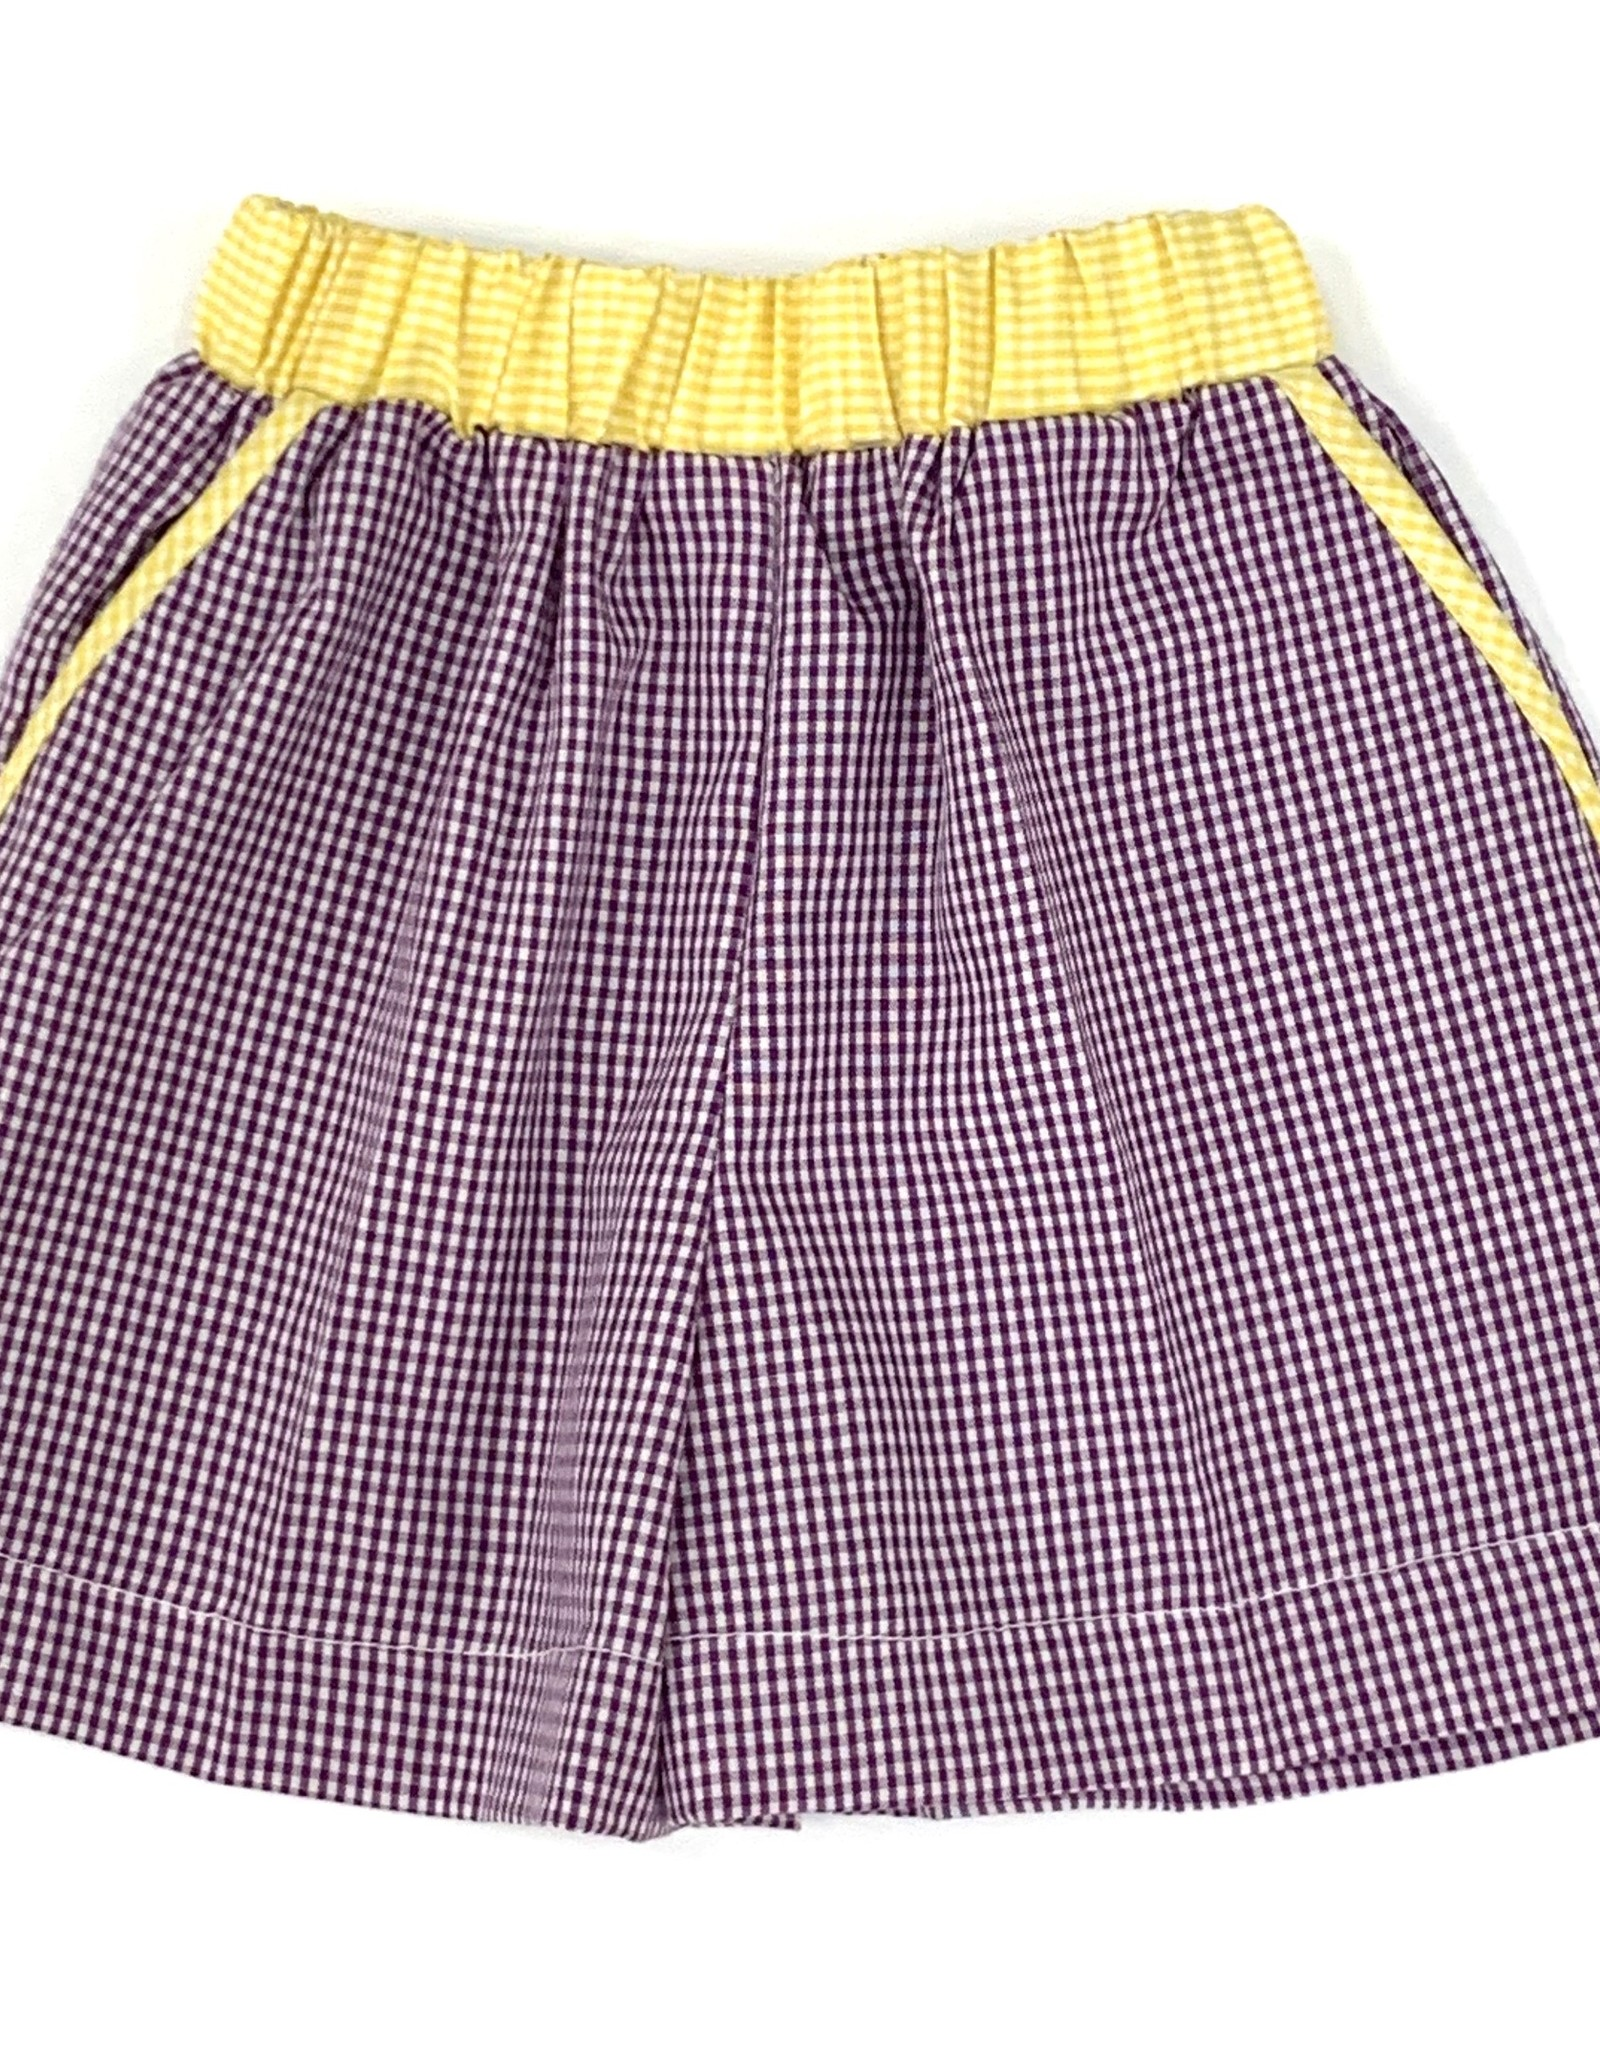 Lulu Bebe LLC Purple Gingham Shorts With Yellow Trim